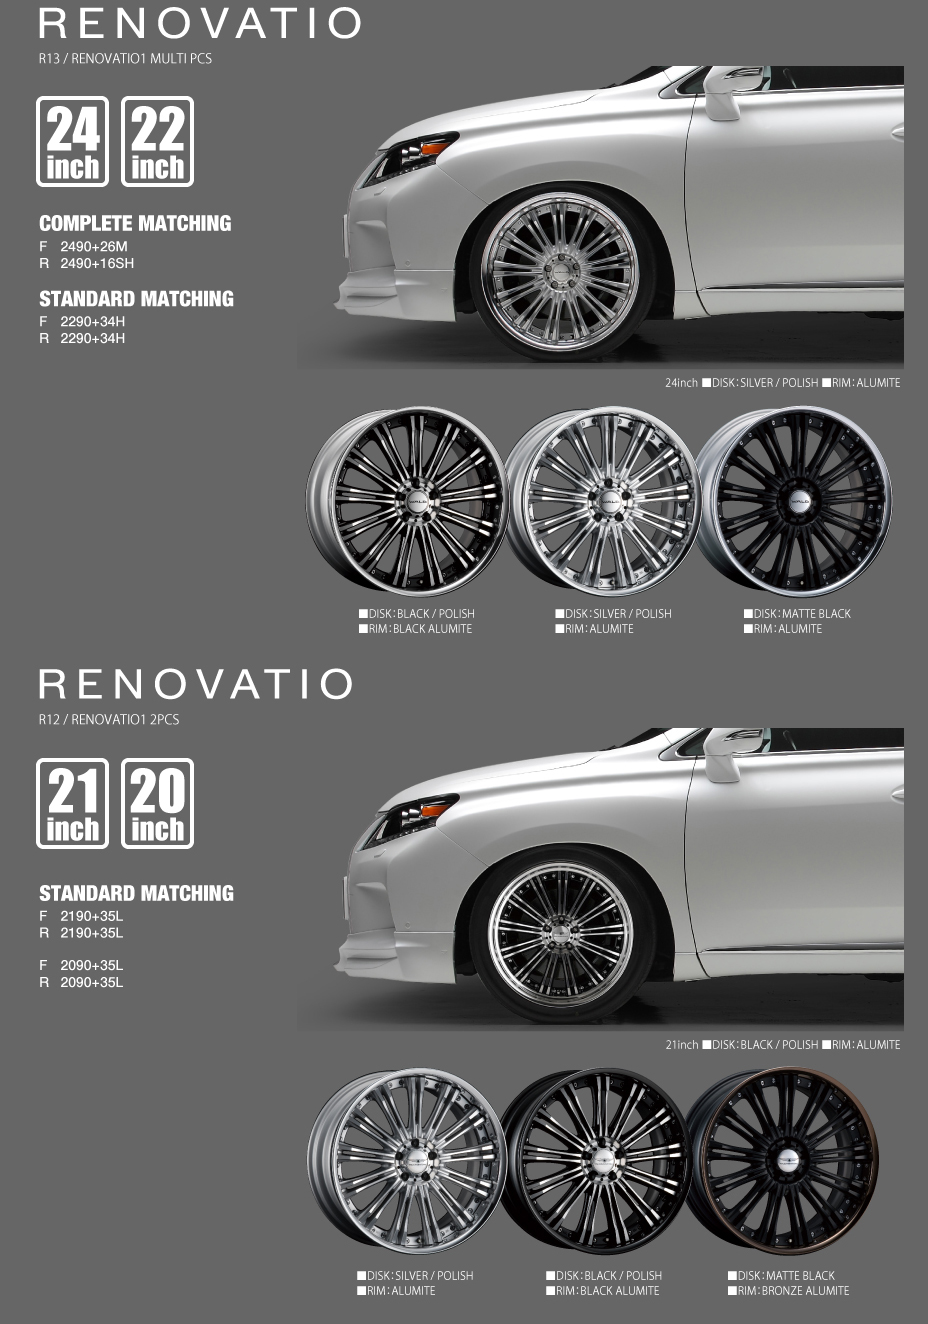 04 lexus rx with Wheel En on 2017 Mazda Rx 8 Specs Review And Concept likewise Lexus Add Three Row Crossover 2016 likewise October 2011 Auto Sales Figures And Data additionally 1976 Ford Falcon Mad Max Big Bopper Mfp Bm 01 likewise 2017 Lexus Rx 350 Redesign Engine Interior.